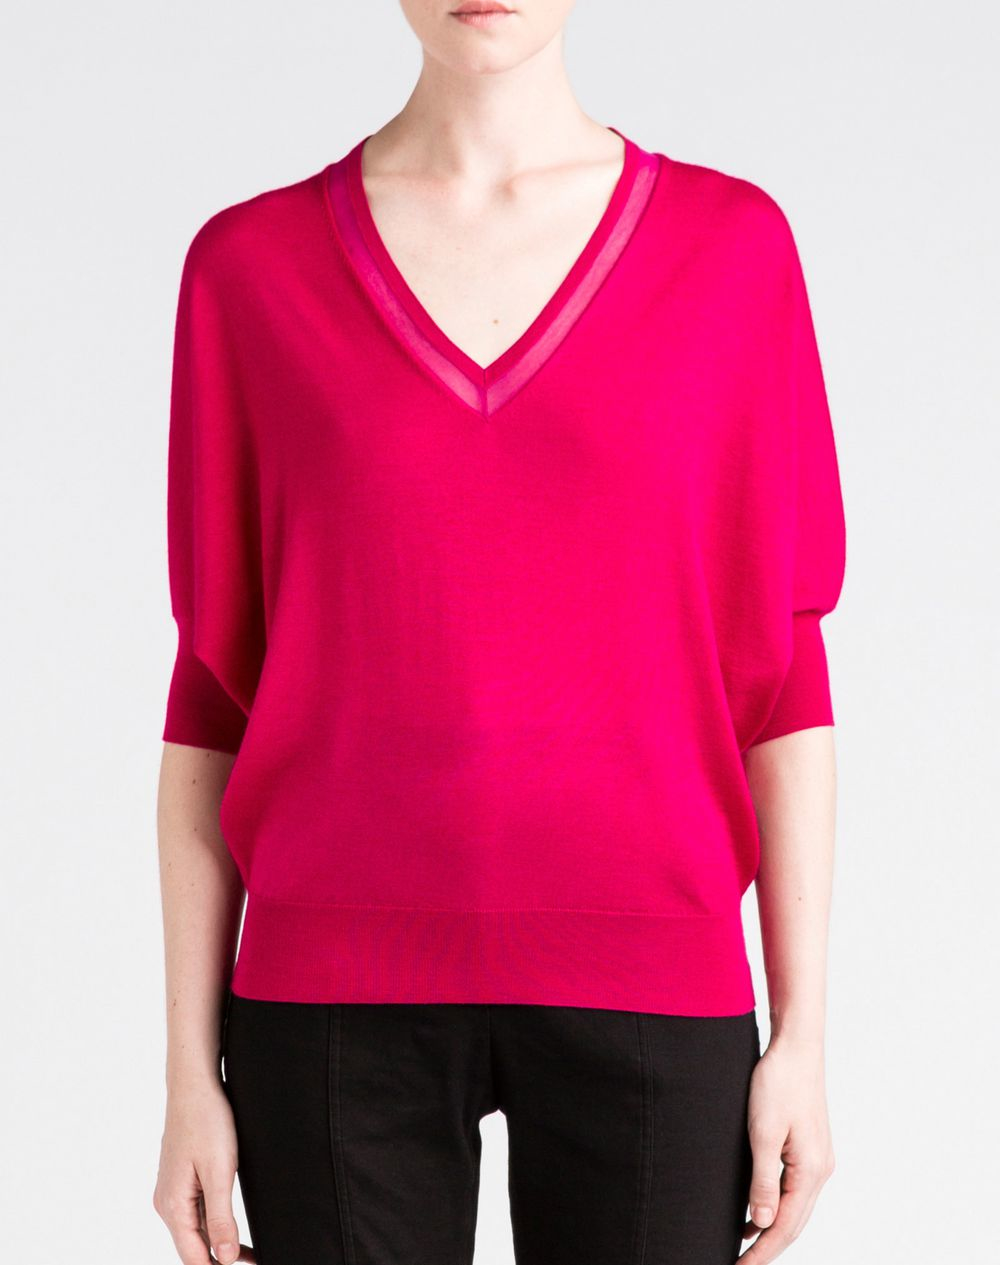 Lyst - Lanvin Top in Purple